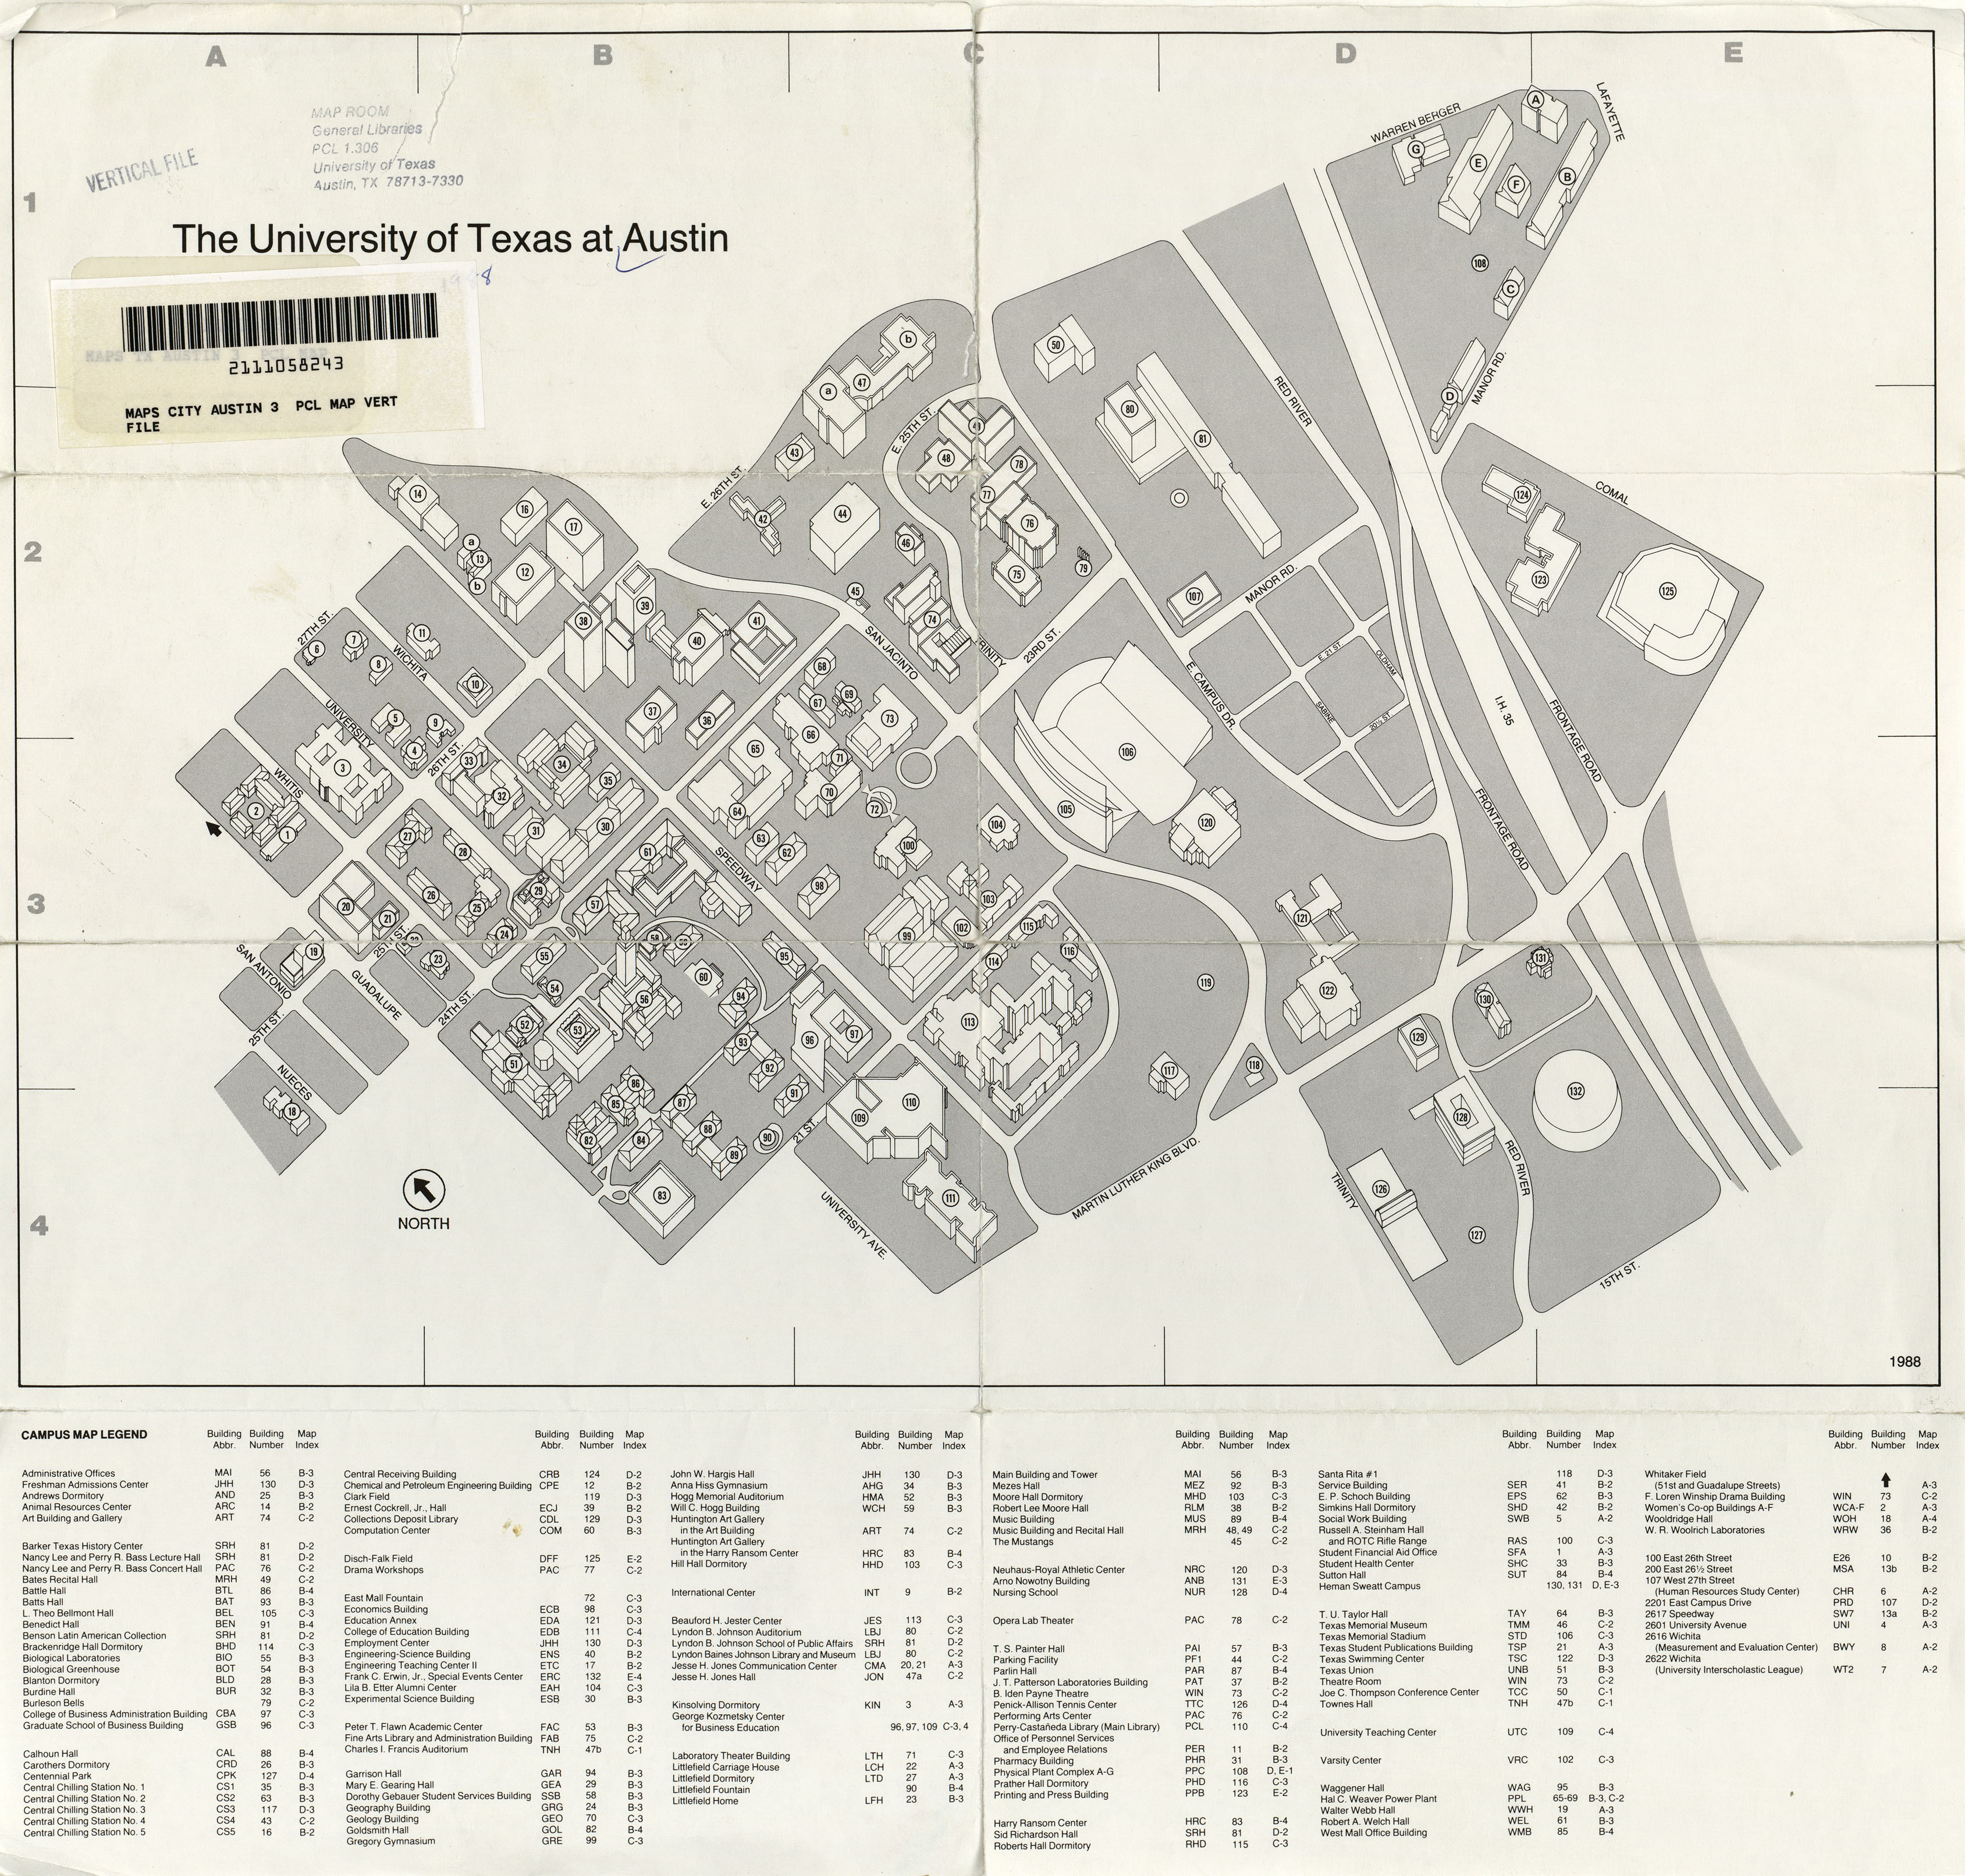 University Of Texas Campus Map Historical Campus Maps University of Texas at Austin   Perry  University Of Texas Campus Map